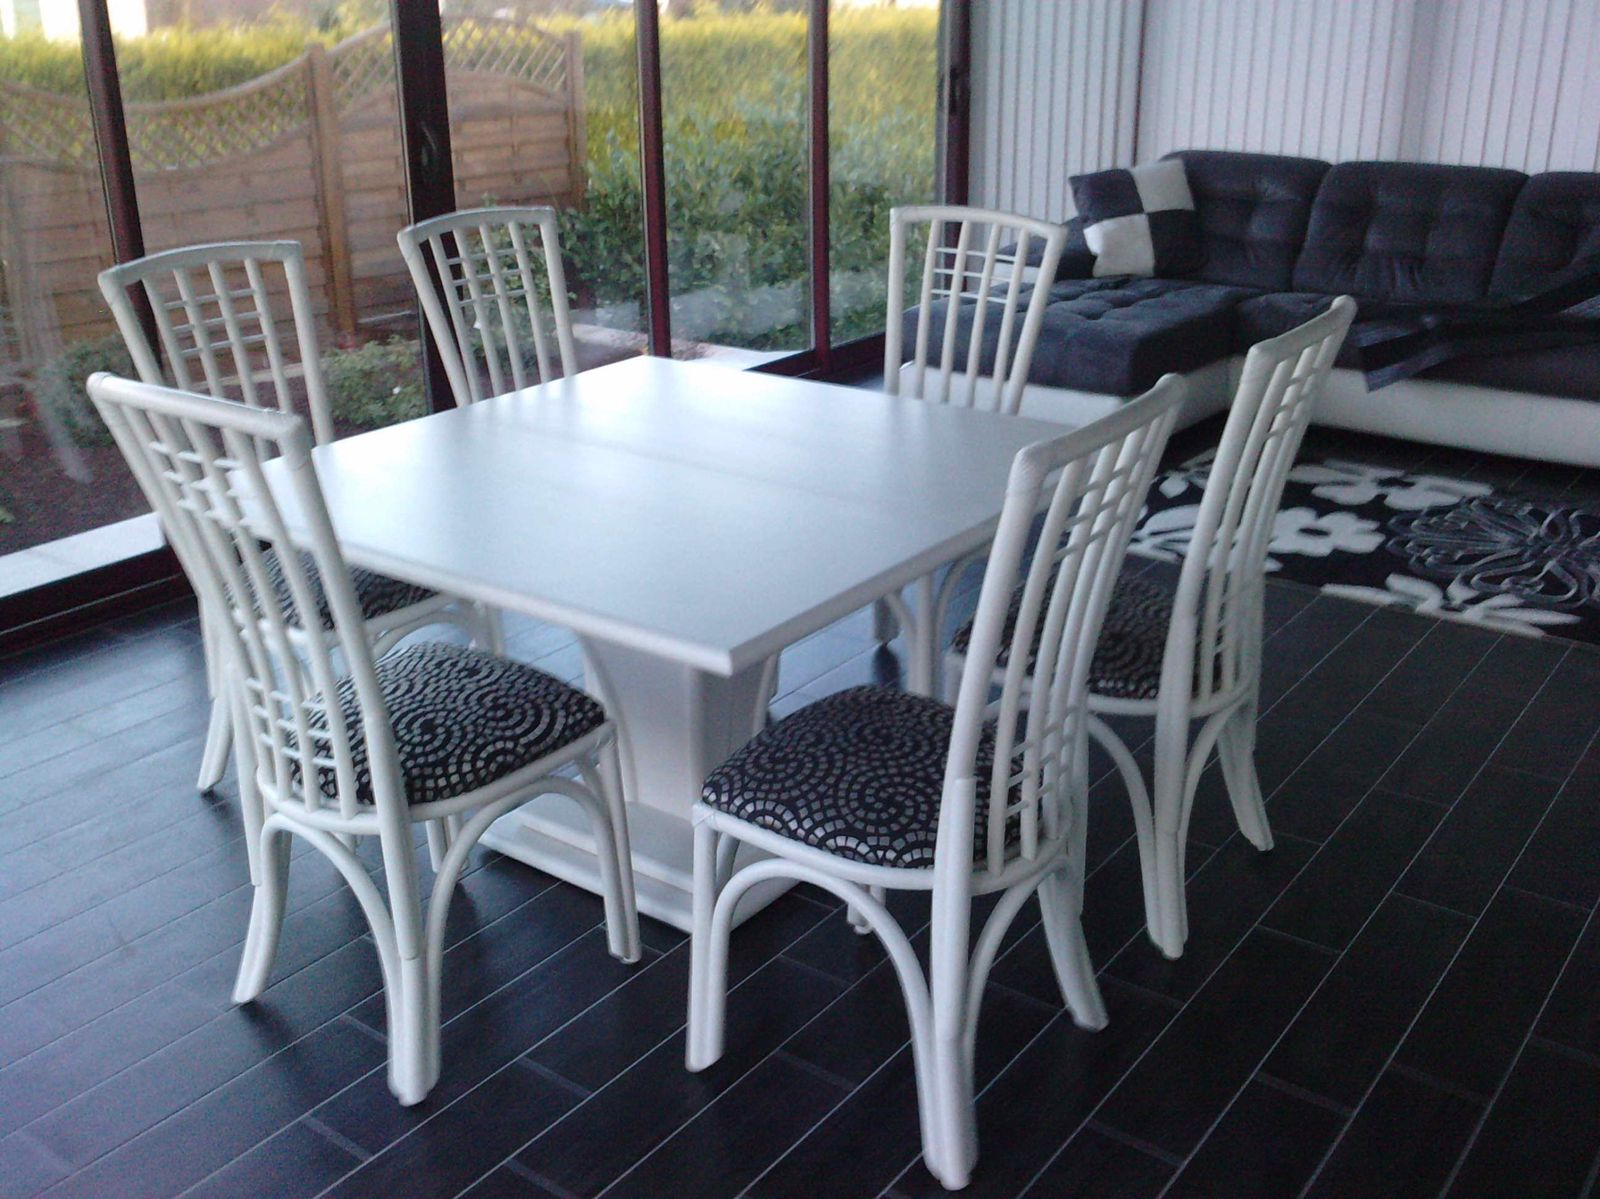 Ensemble Table Et Chaise En Rotin Album Meubles De Veranda Exodia Home Design Tables